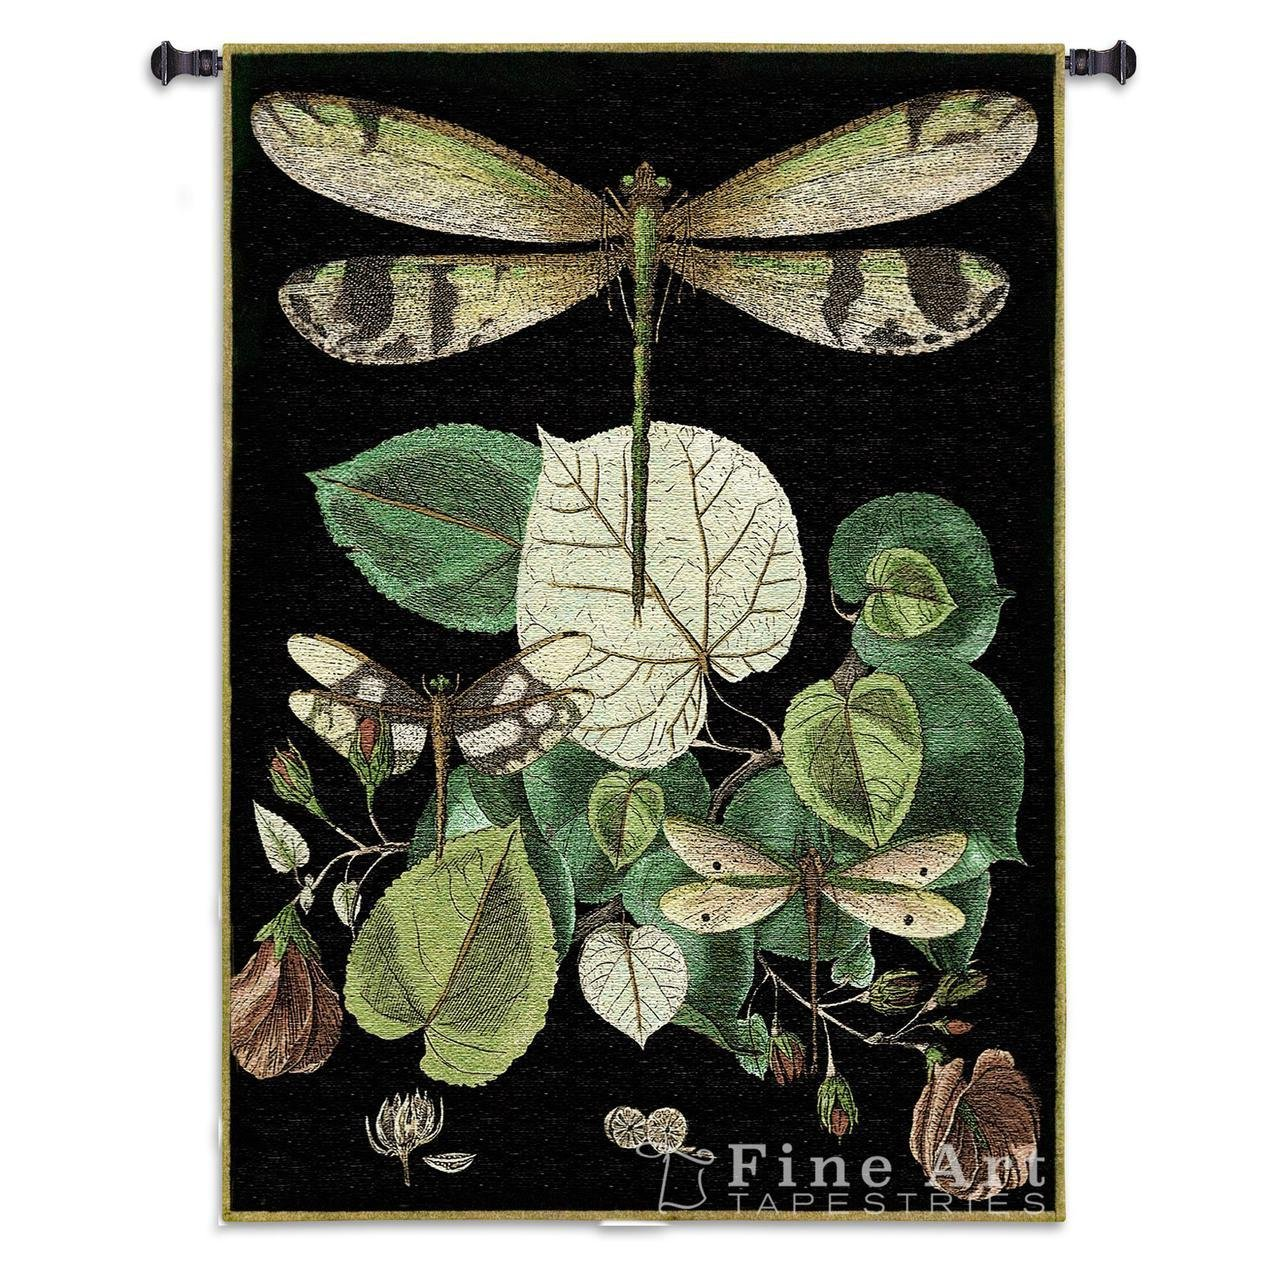 Fine Art Tapestries ''Whimsical Dragonfly II'' Wall Tapestry by Fine Art Tapestries